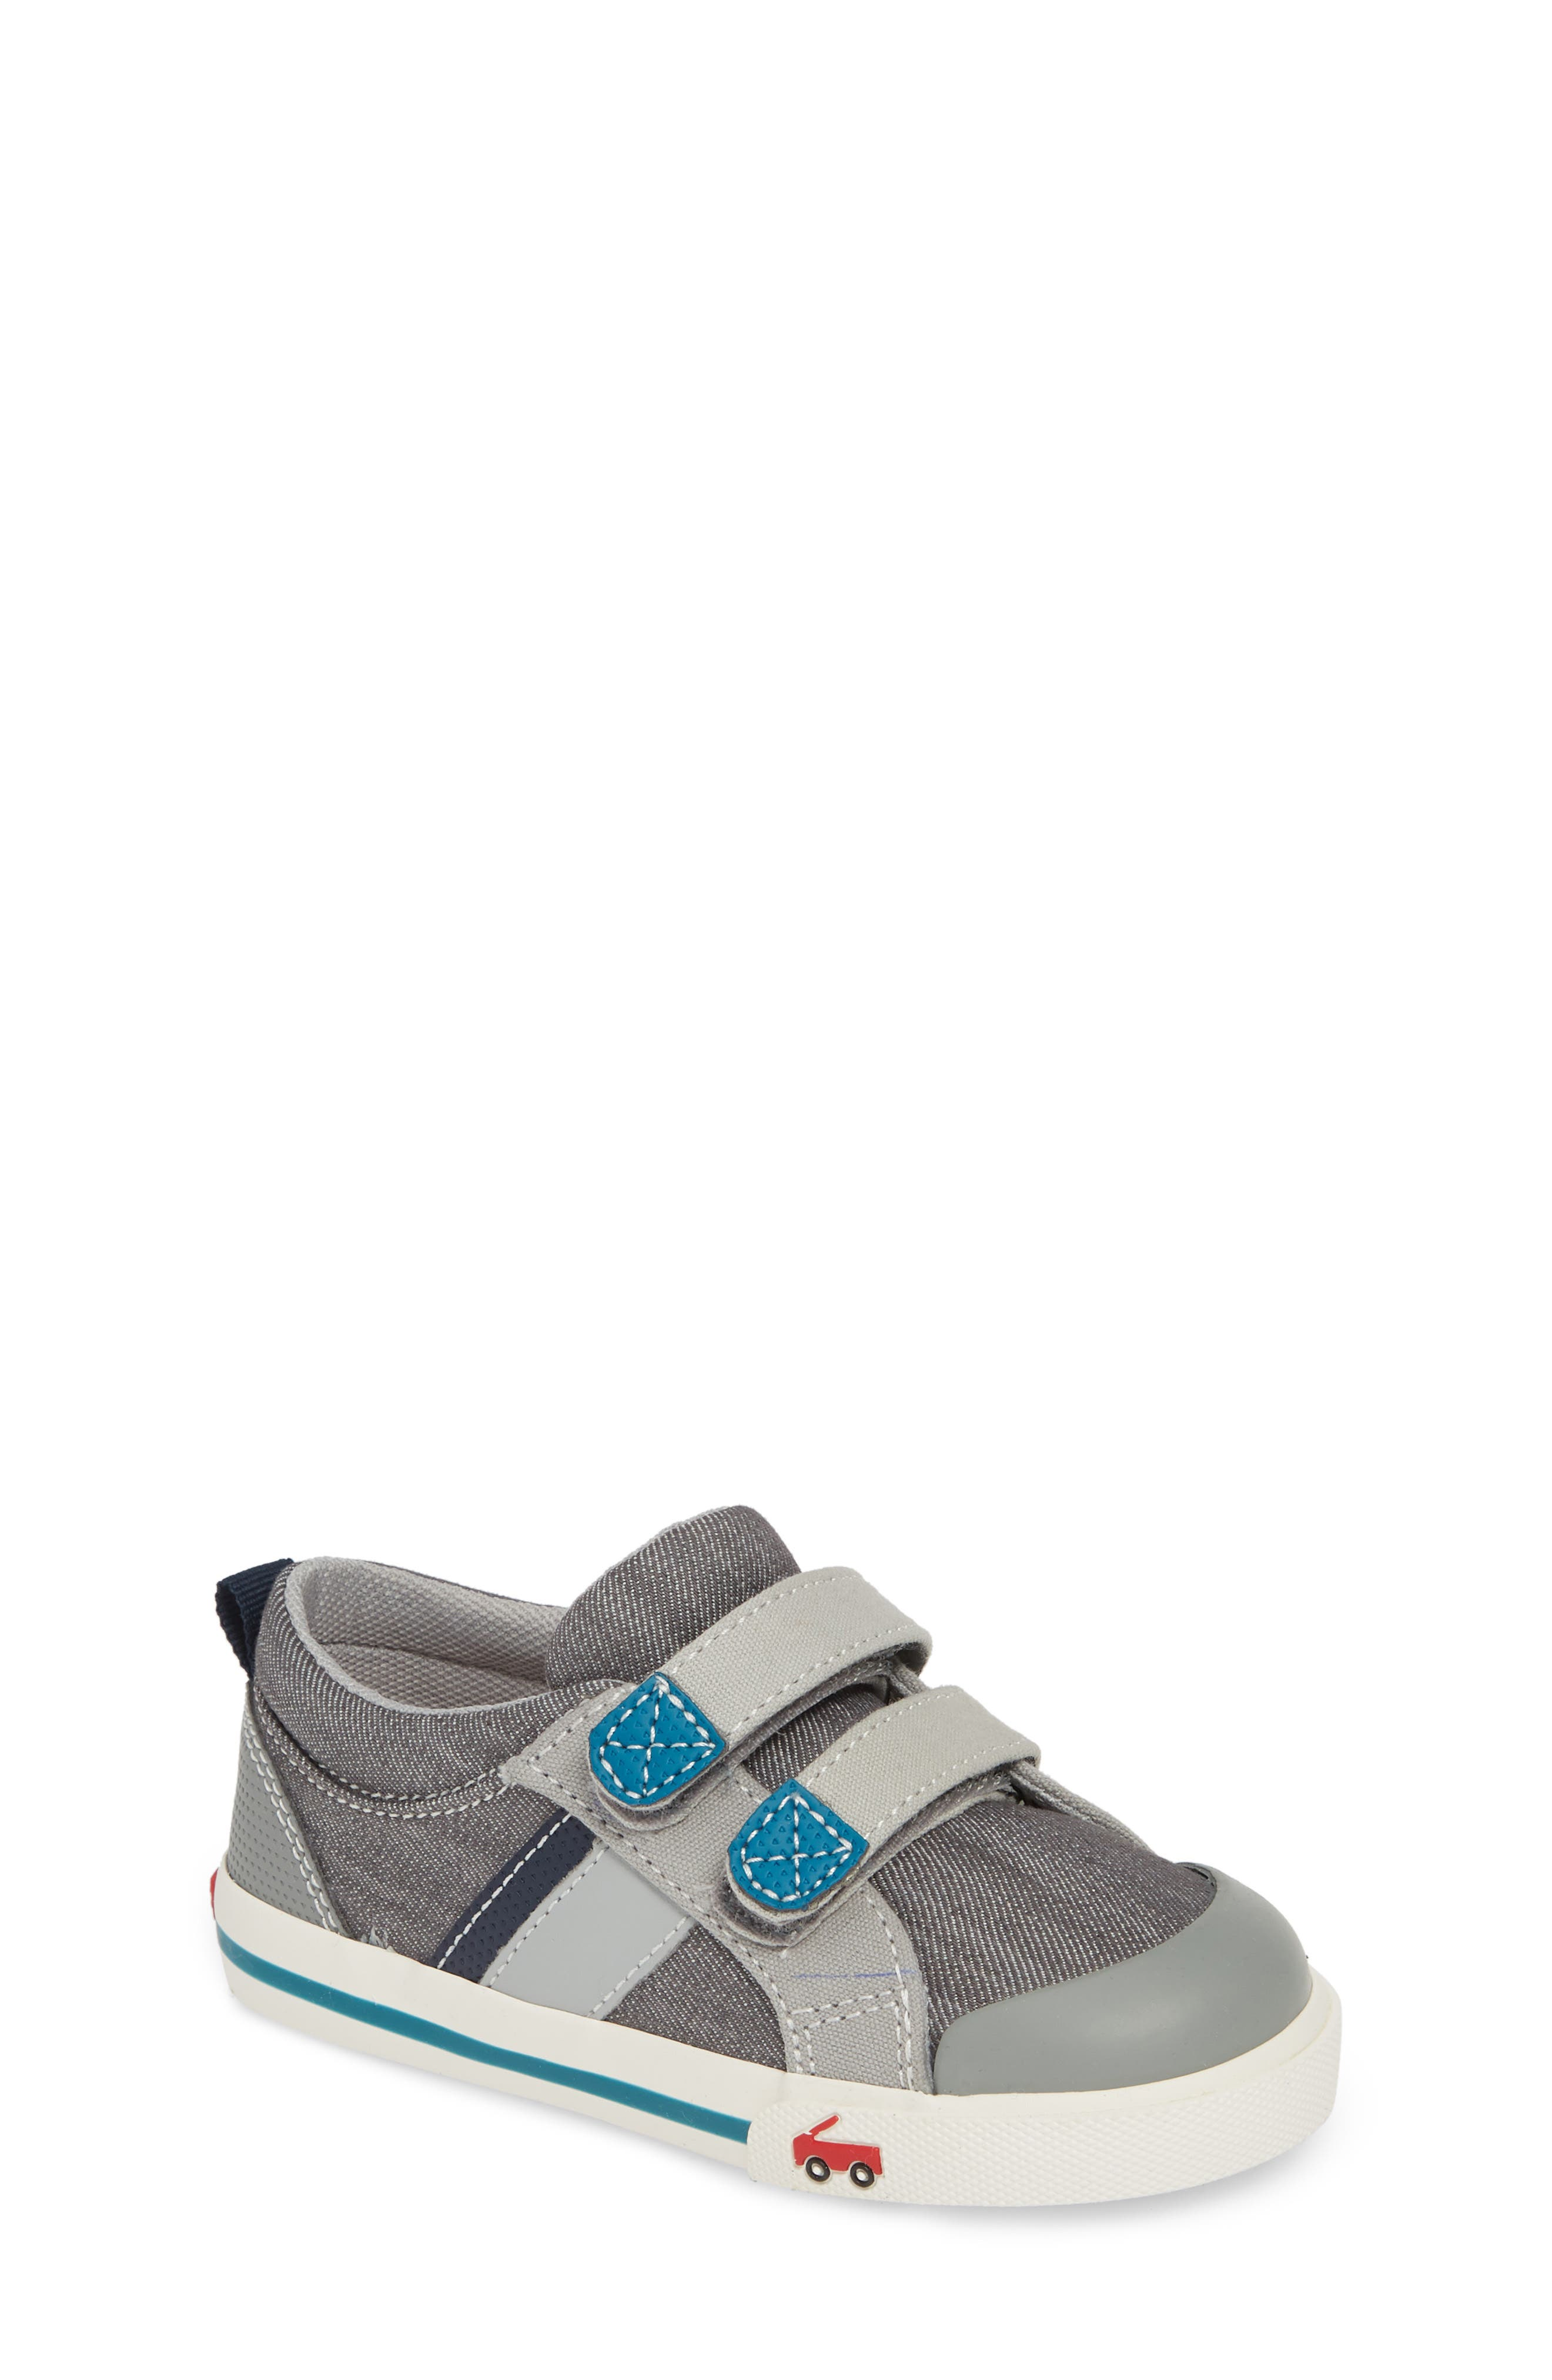 SEE KAI RUN, 'Russell' Sneaker, Main thumbnail 1, color, GREY/ TEAL